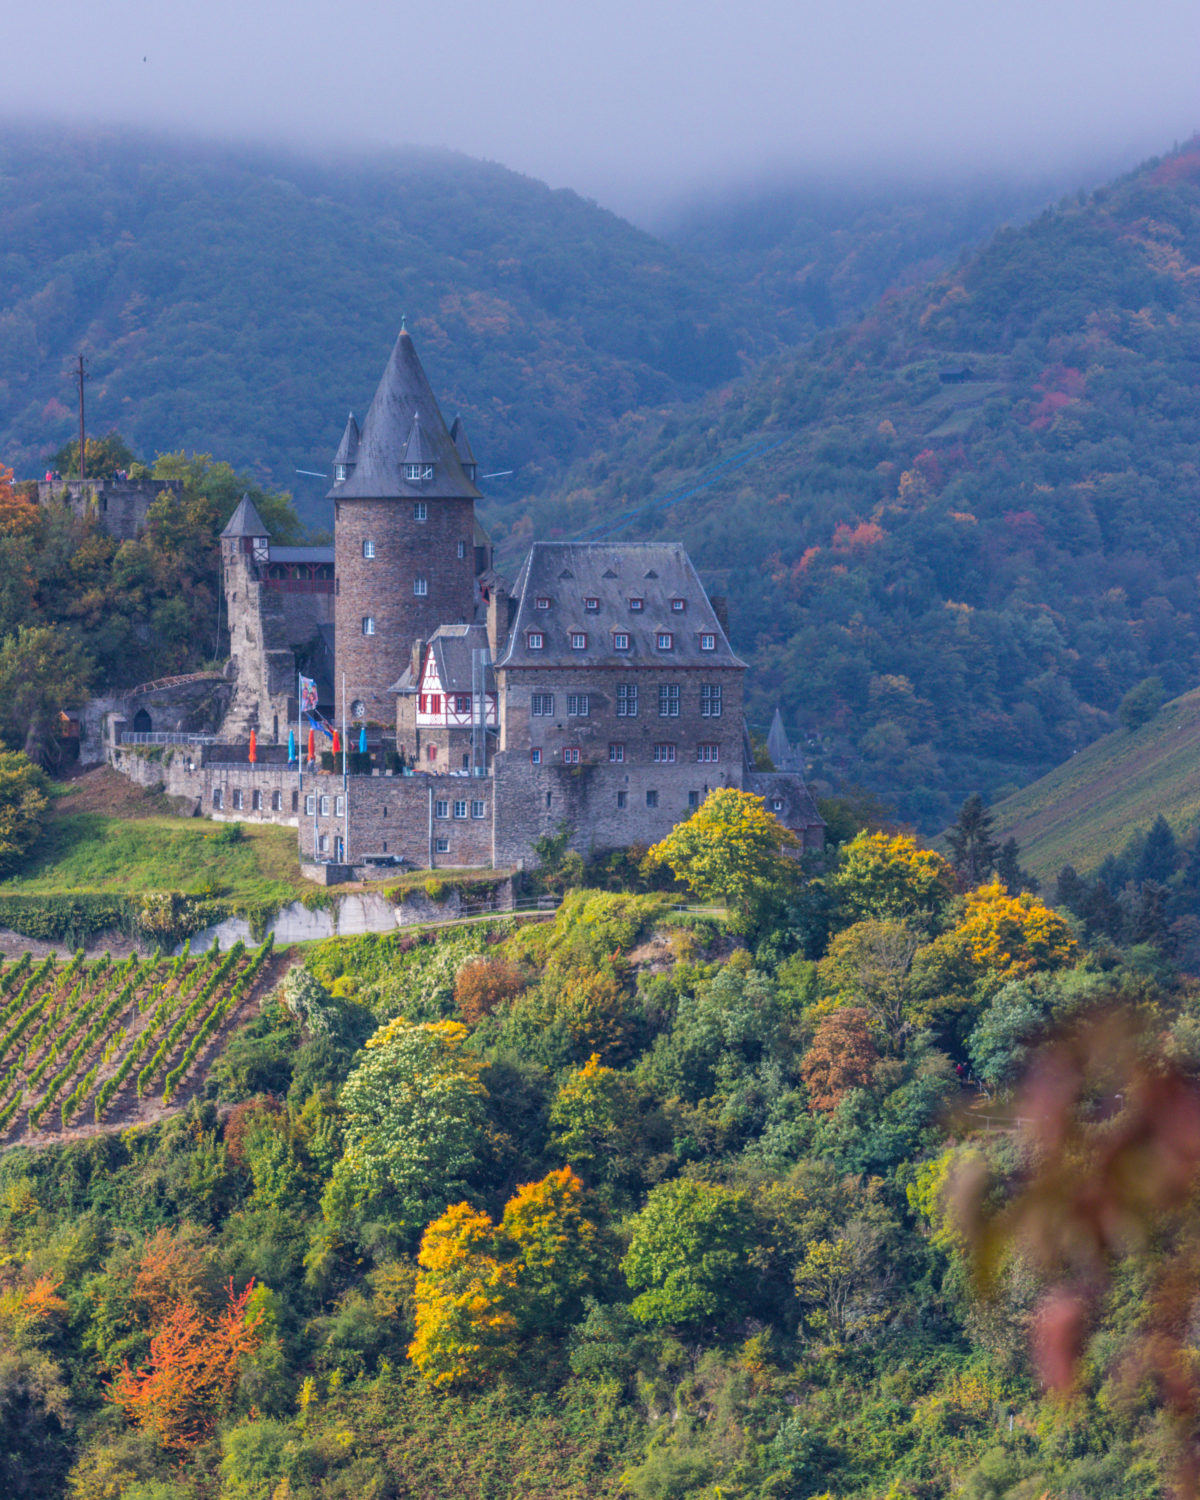 This Rhine hike offers several perspectives of multiple castles. Stahleck probably the most prominent one.